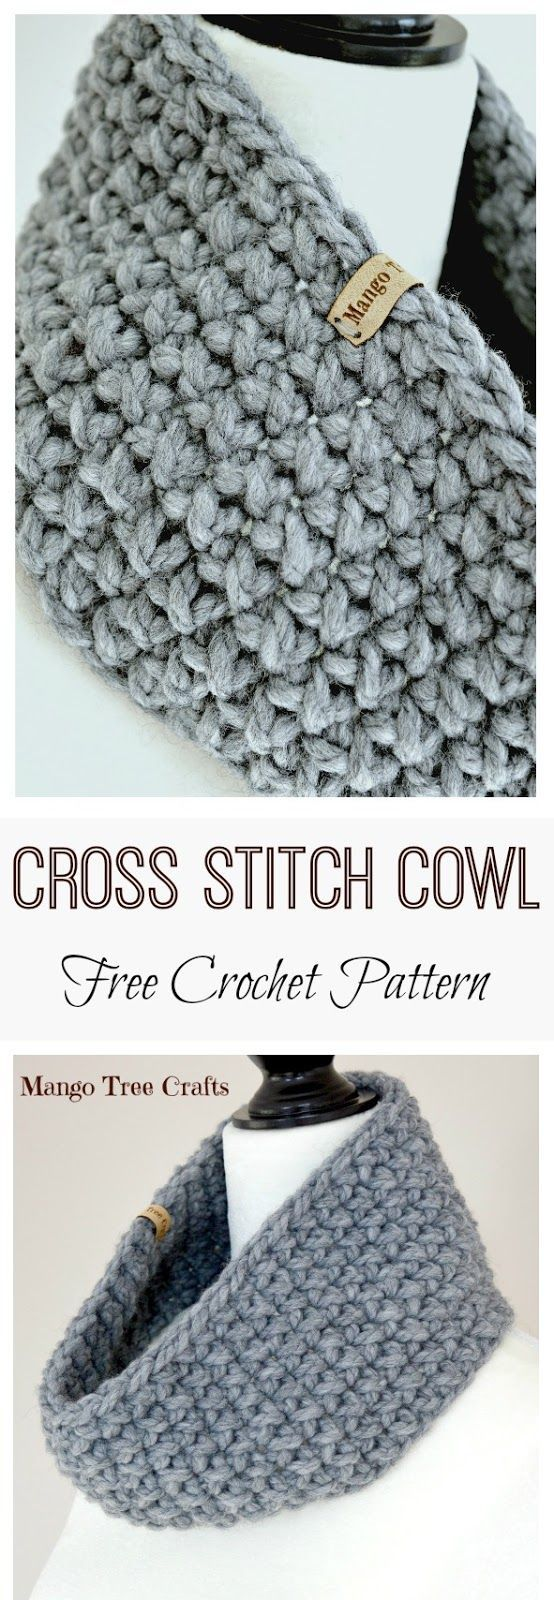 LESS THAN 1 HOUR CROCHETCOWL FREE CROCHETPATTERN